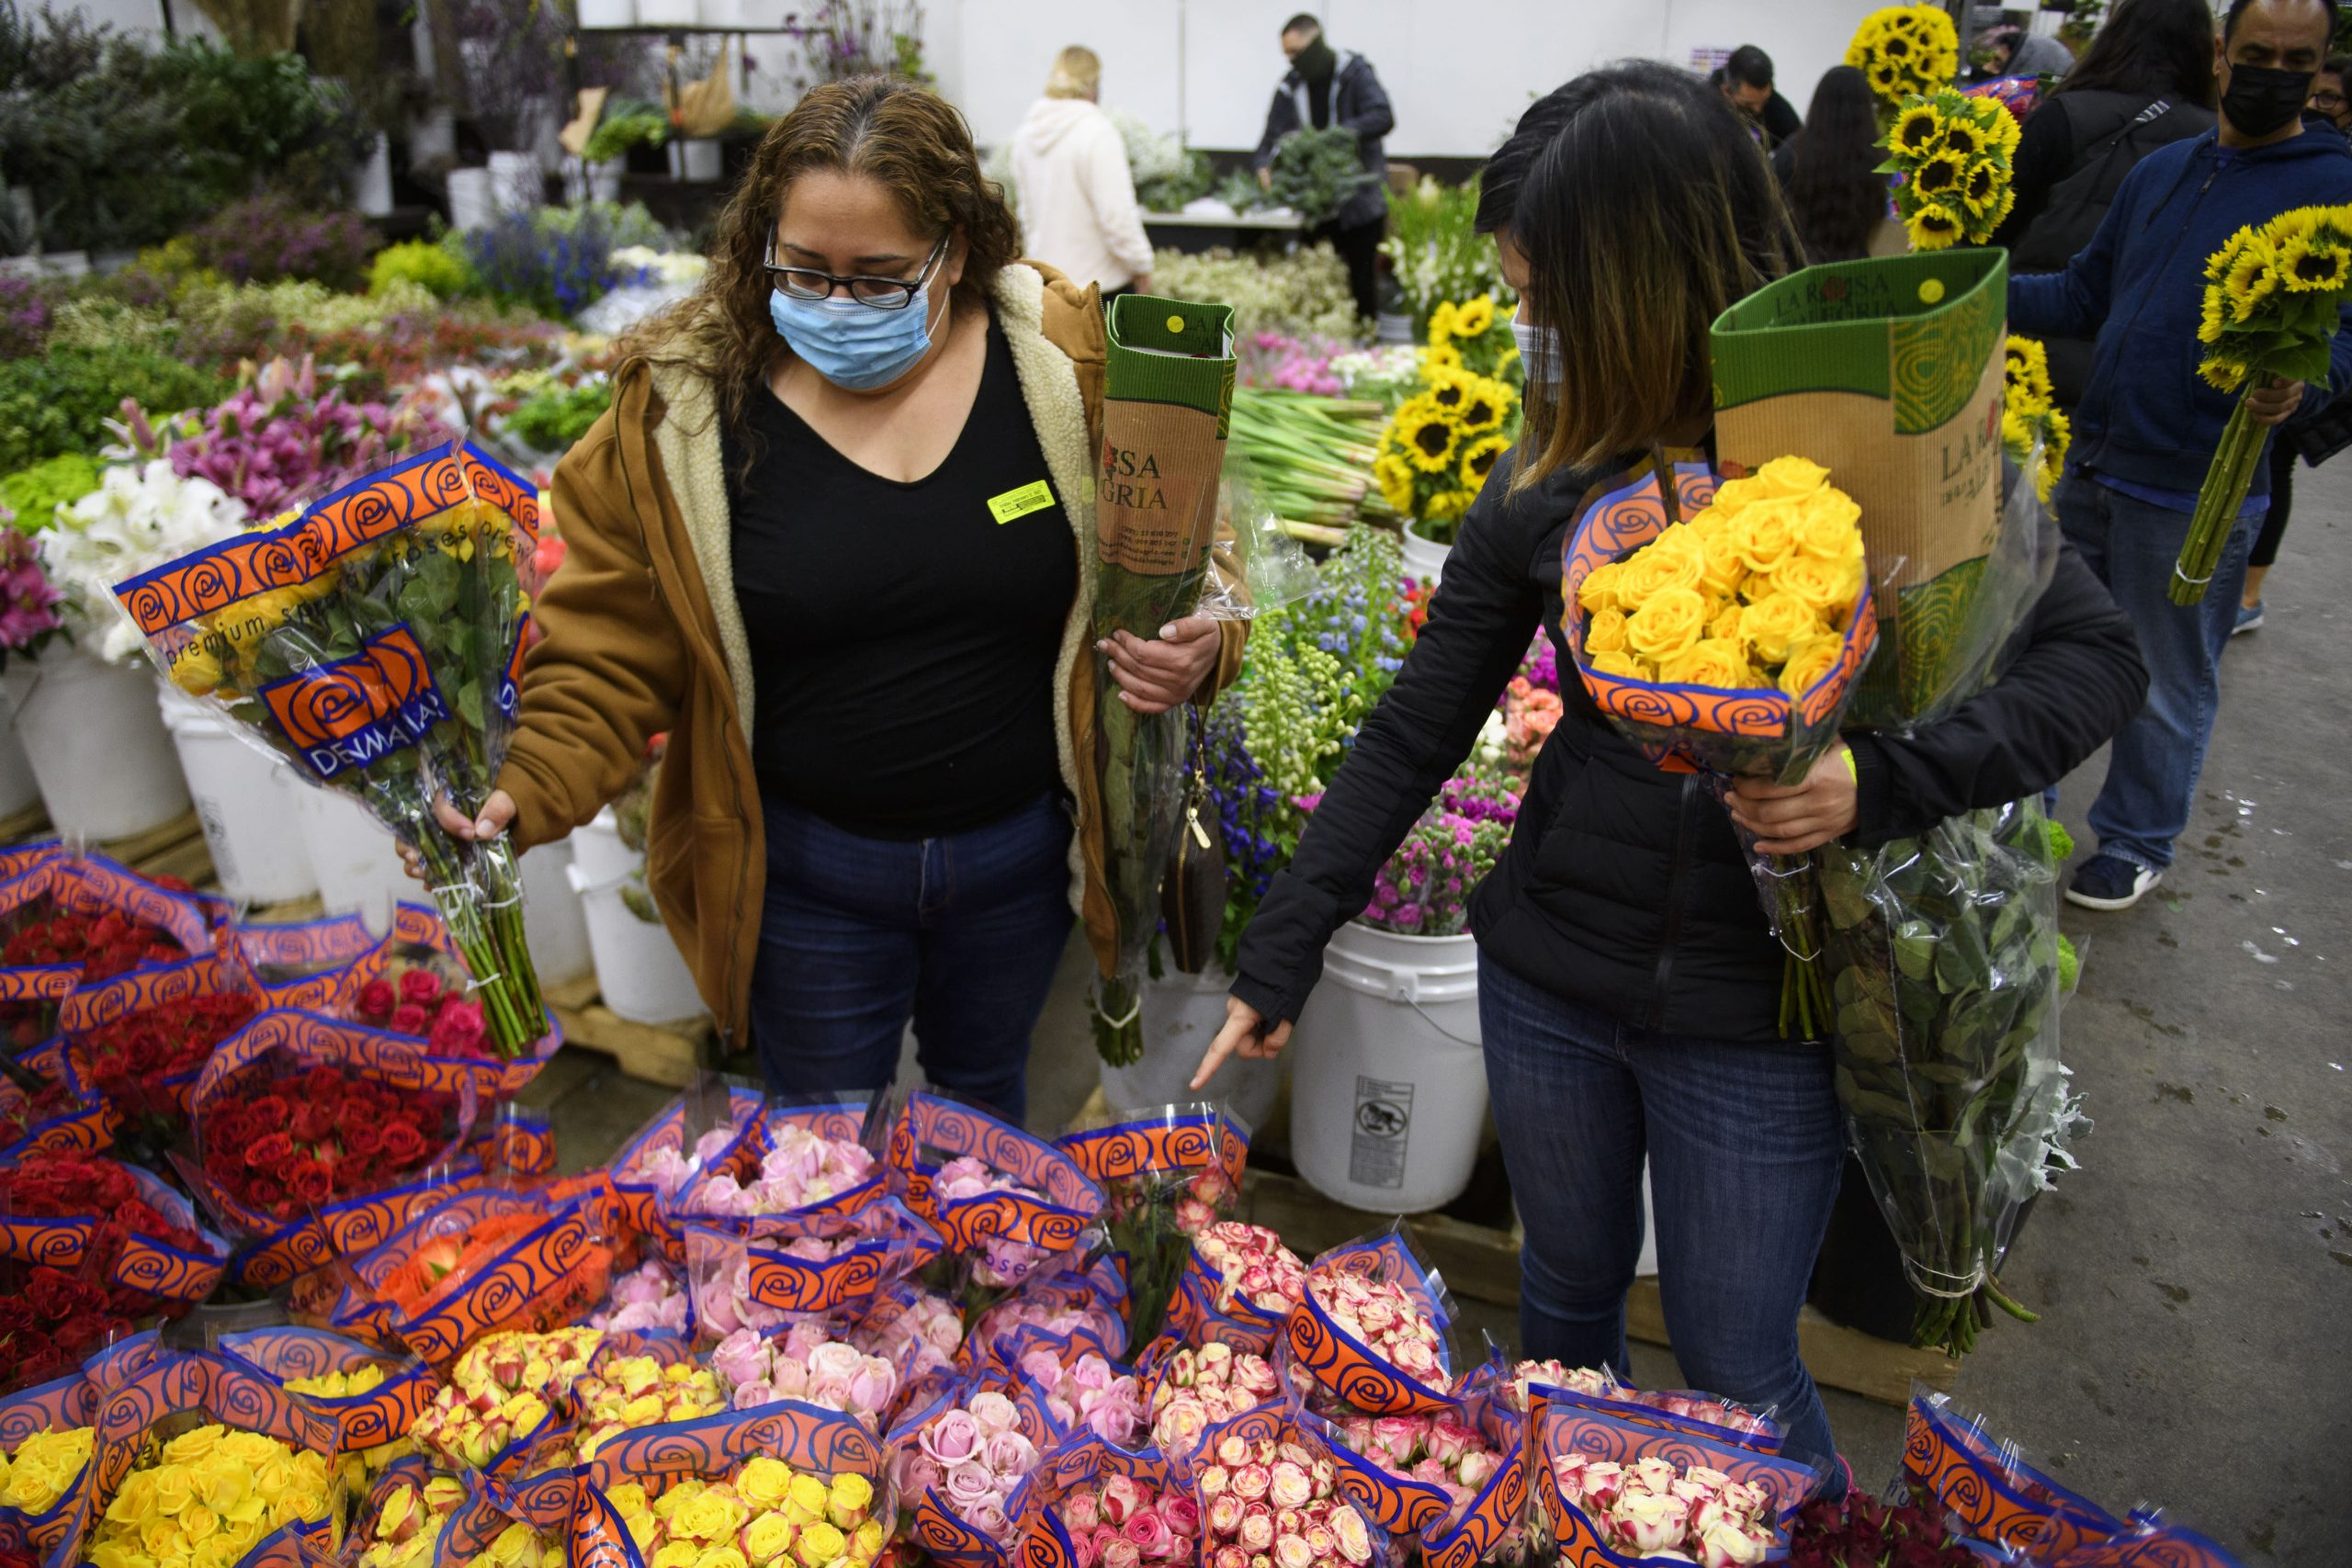 1-800-Flowers can meet demand for flowers this Mother's Day, CEO says